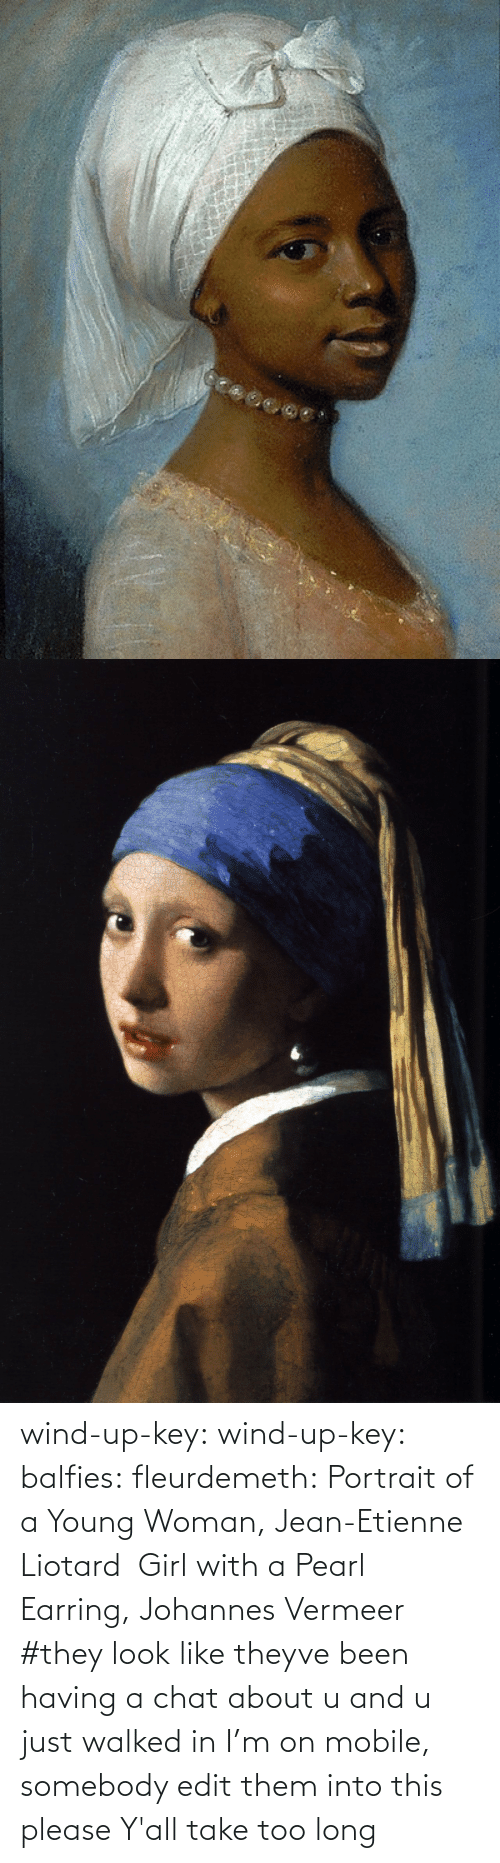 Too Long: wind-up-key: wind-up-key:   balfies:  fleurdemeth:  Portrait of a Young Woman, Jean-Etienne Liotard Girl with a Pearl Earring, Johannes Vermeer  #they look like theyve been having a chat about u and u just walked in   I'm on mobile, somebody edit them into this please   Y'all take too long